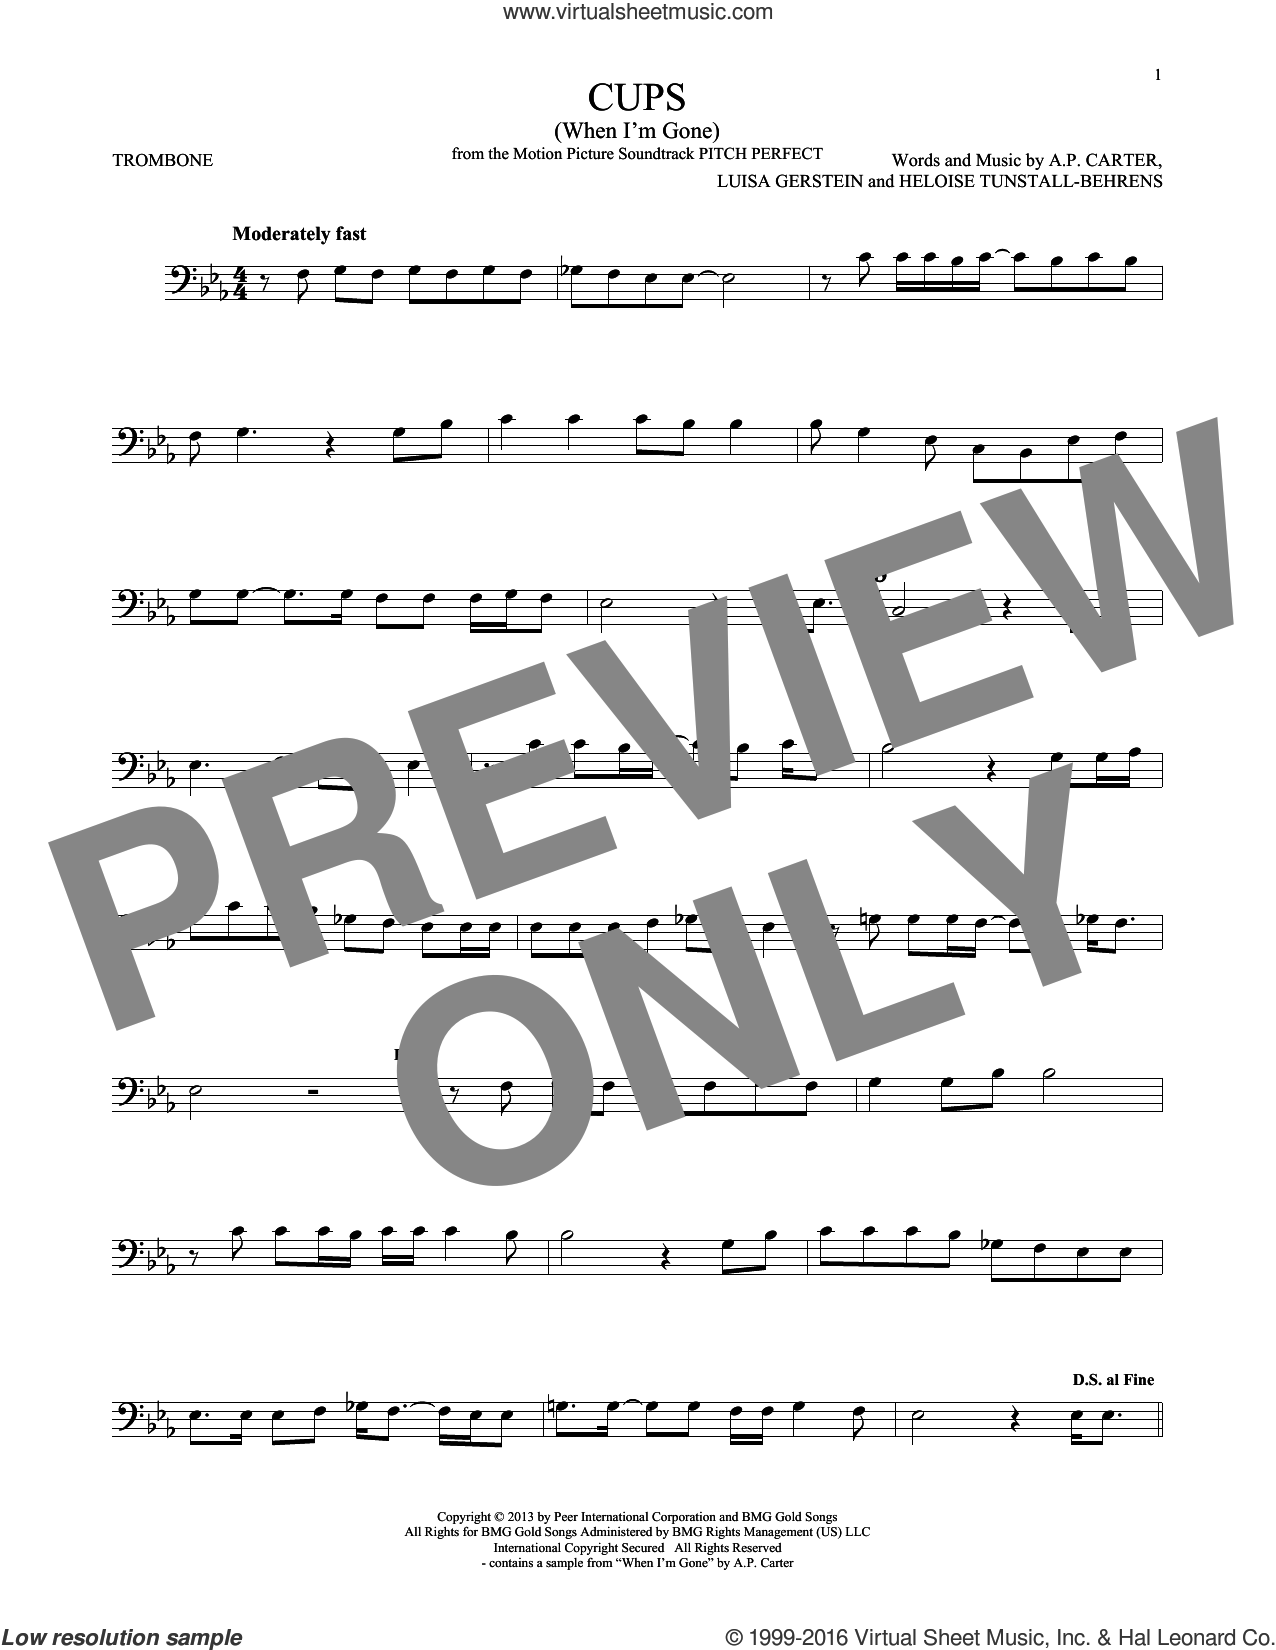 Cups (When I'm Gone) sheet music for trombone solo by Anna Kendrick, A.P. Carter, Heloise Tunstall-Behrens and Luisa Gerstein, intermediate skill level